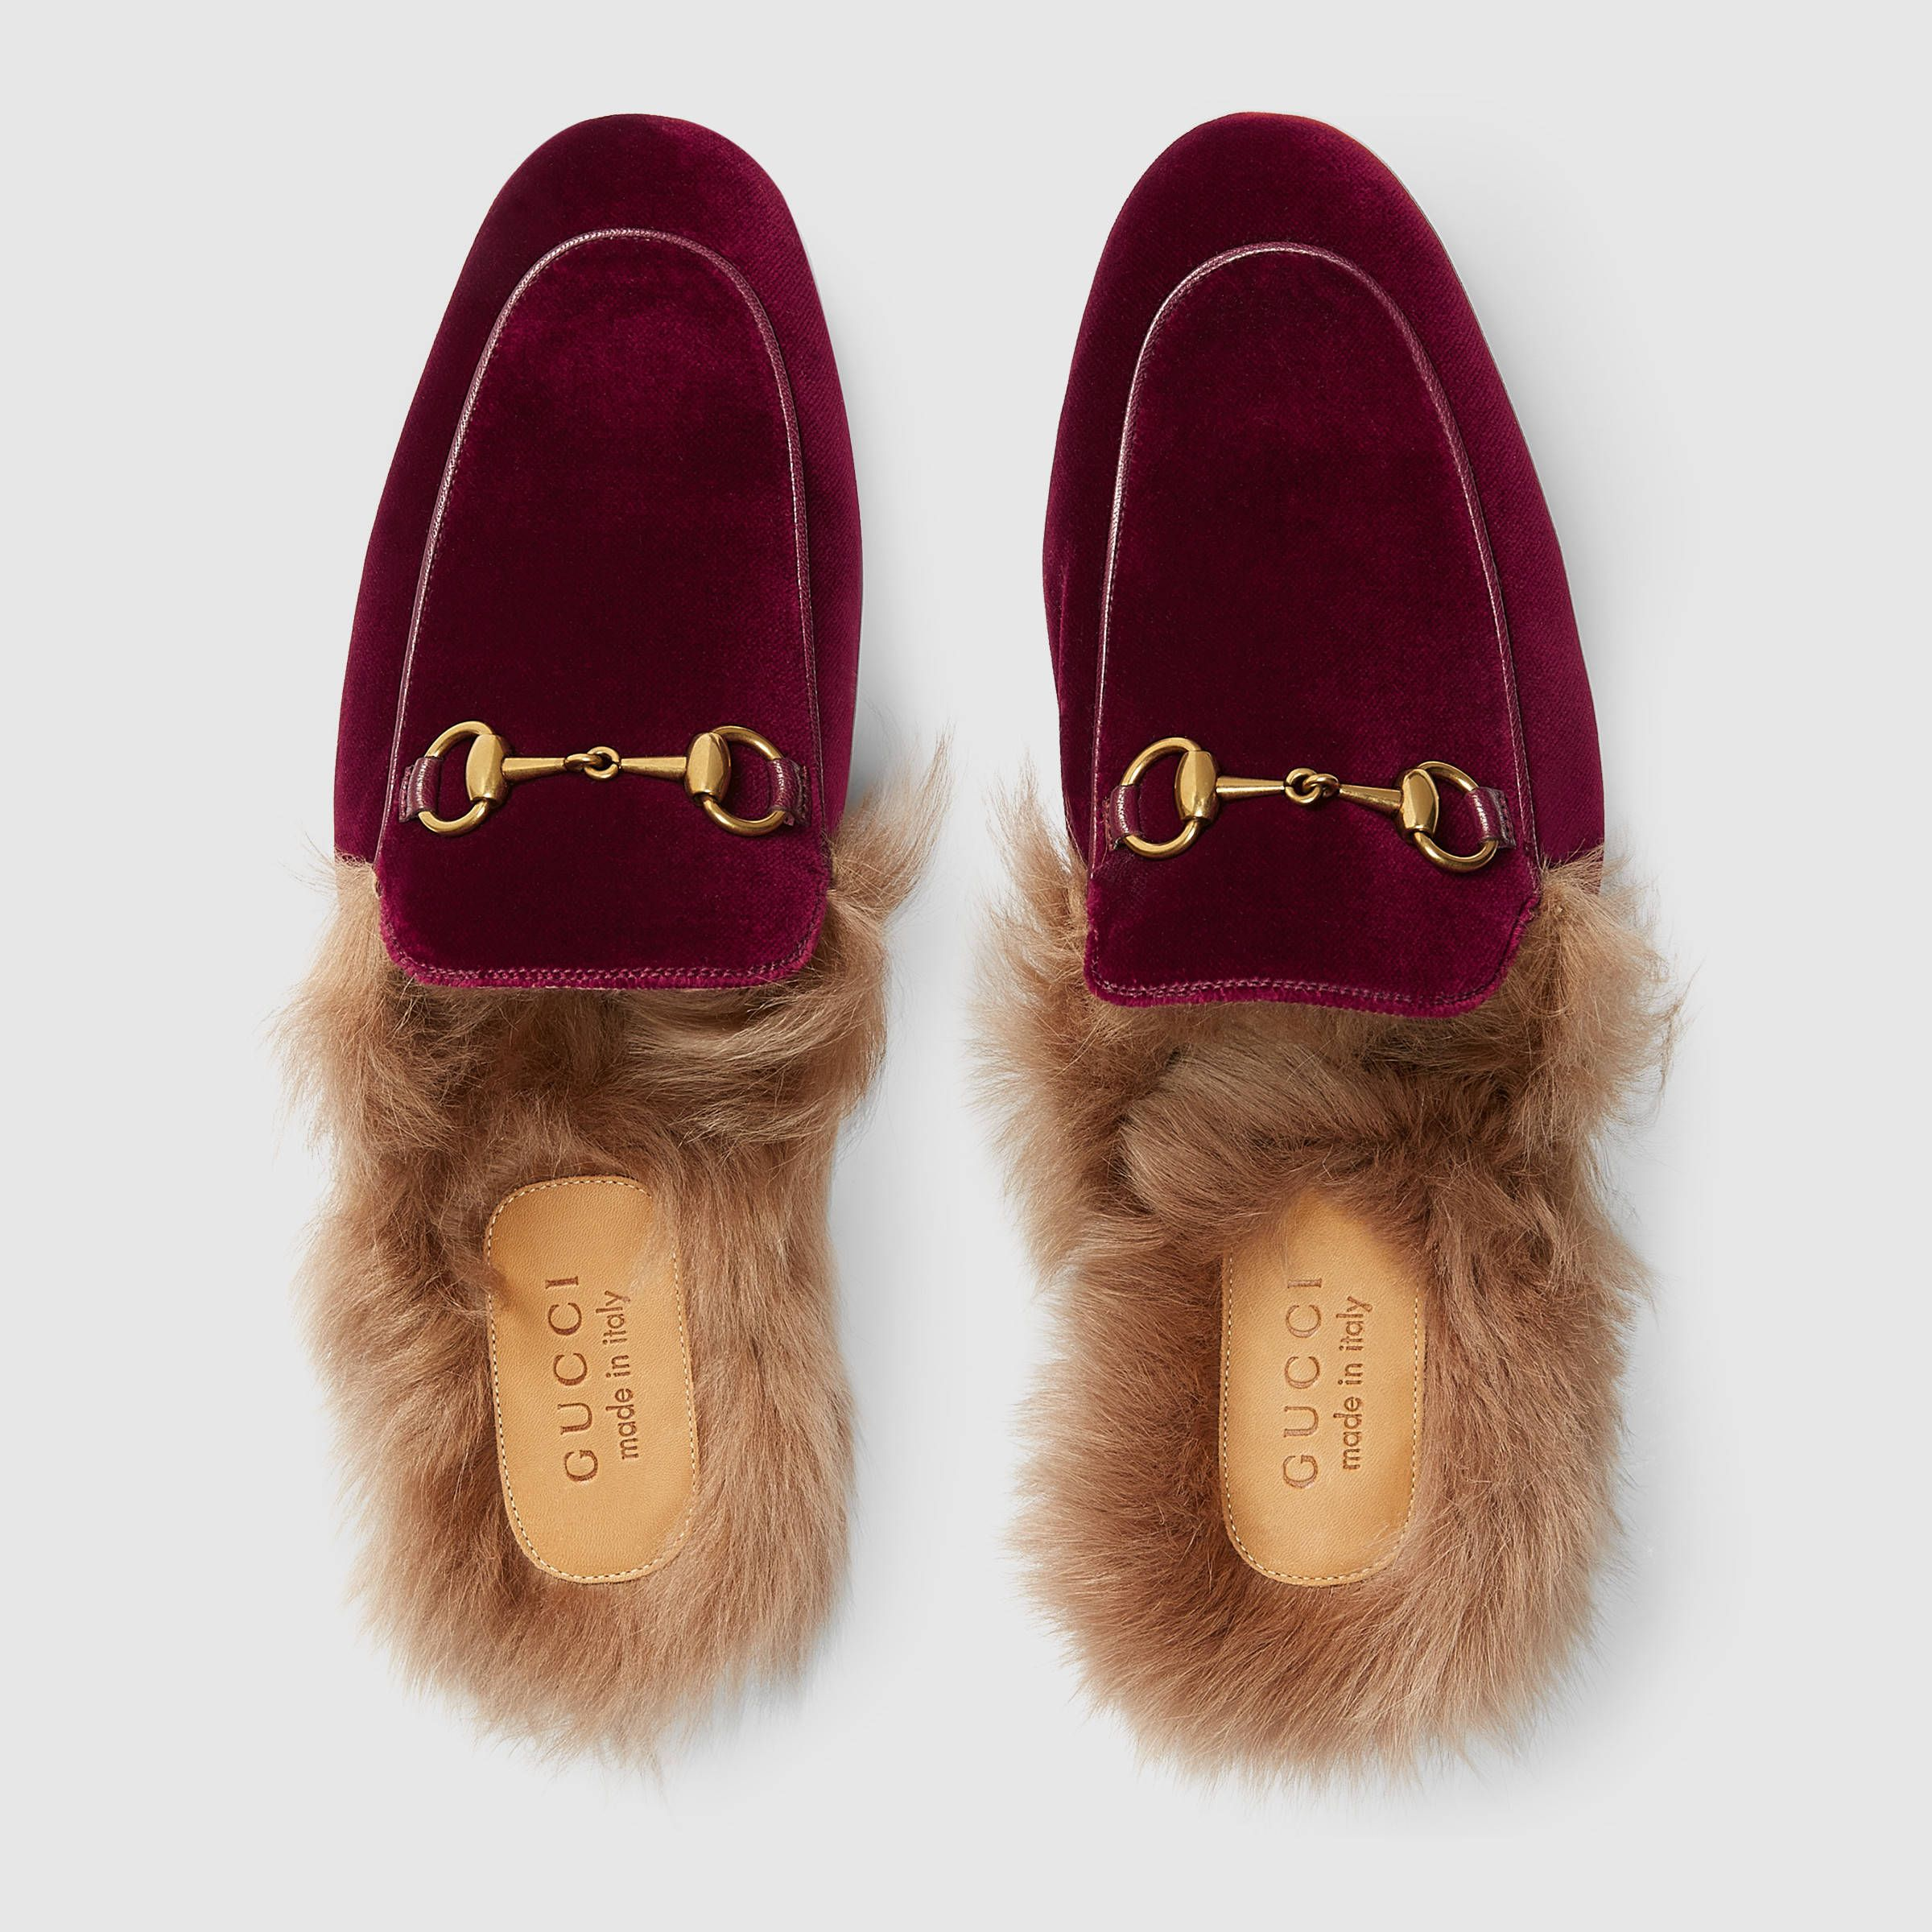 Gucci Princetown Velvet Slipper Detail 3 Gucci Slippers Women Leather Slippers For Men Fashion Slippers